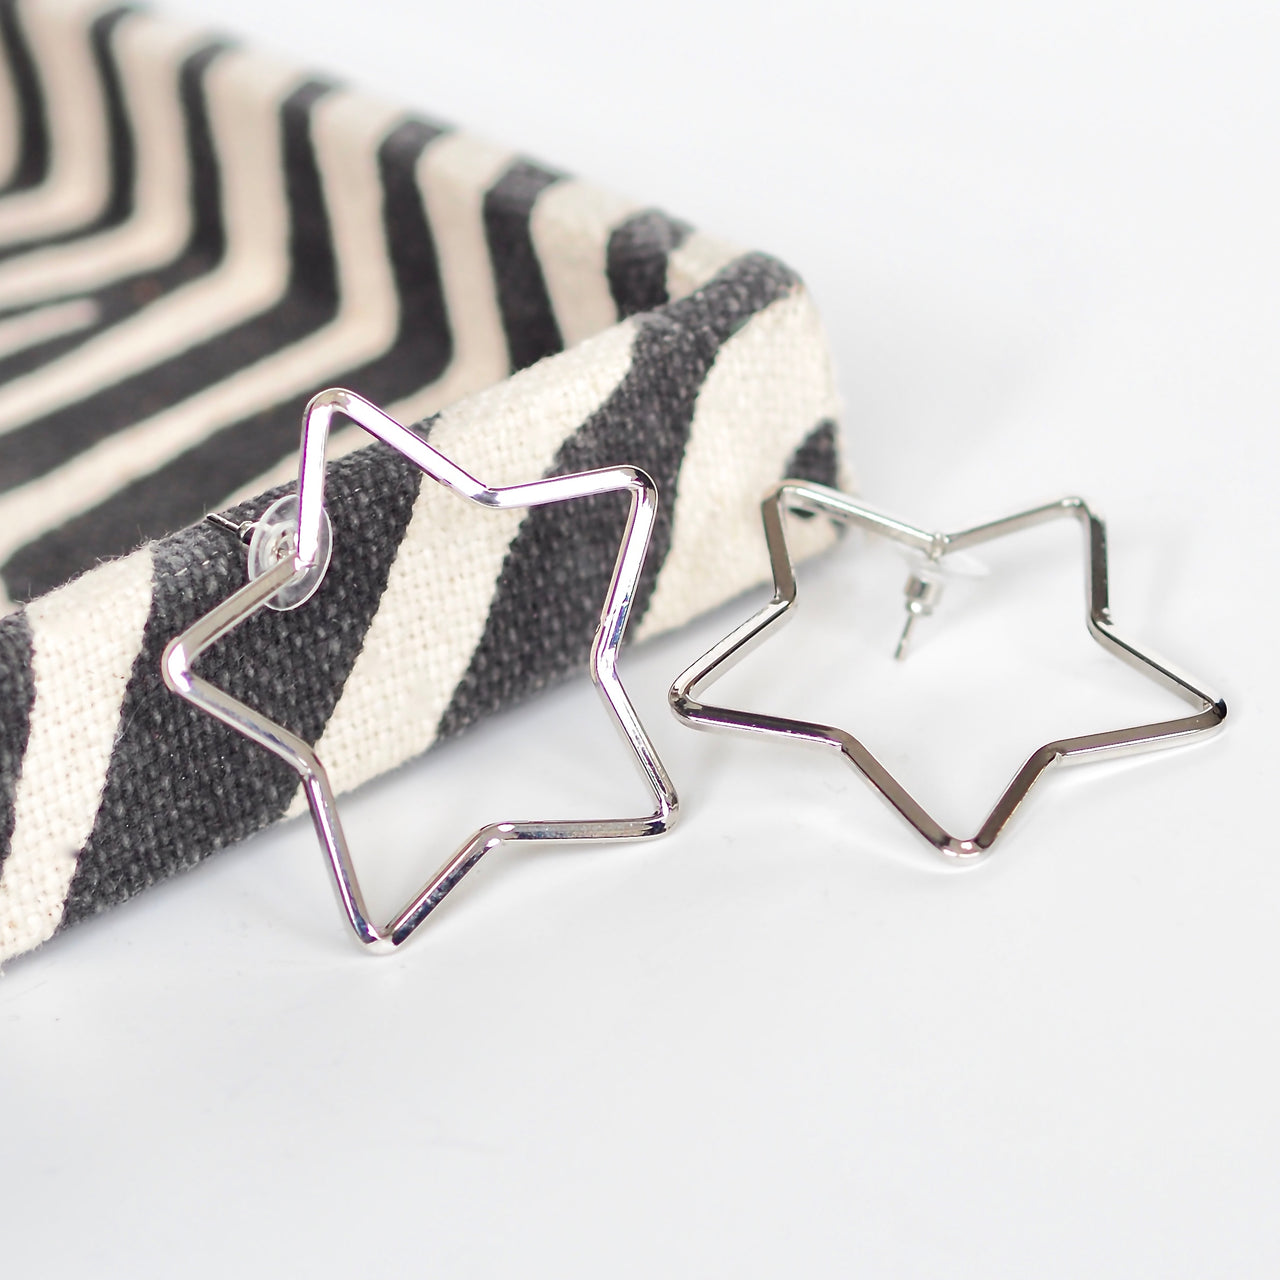 Mega Marmite Star Earrings - Silver 6cm